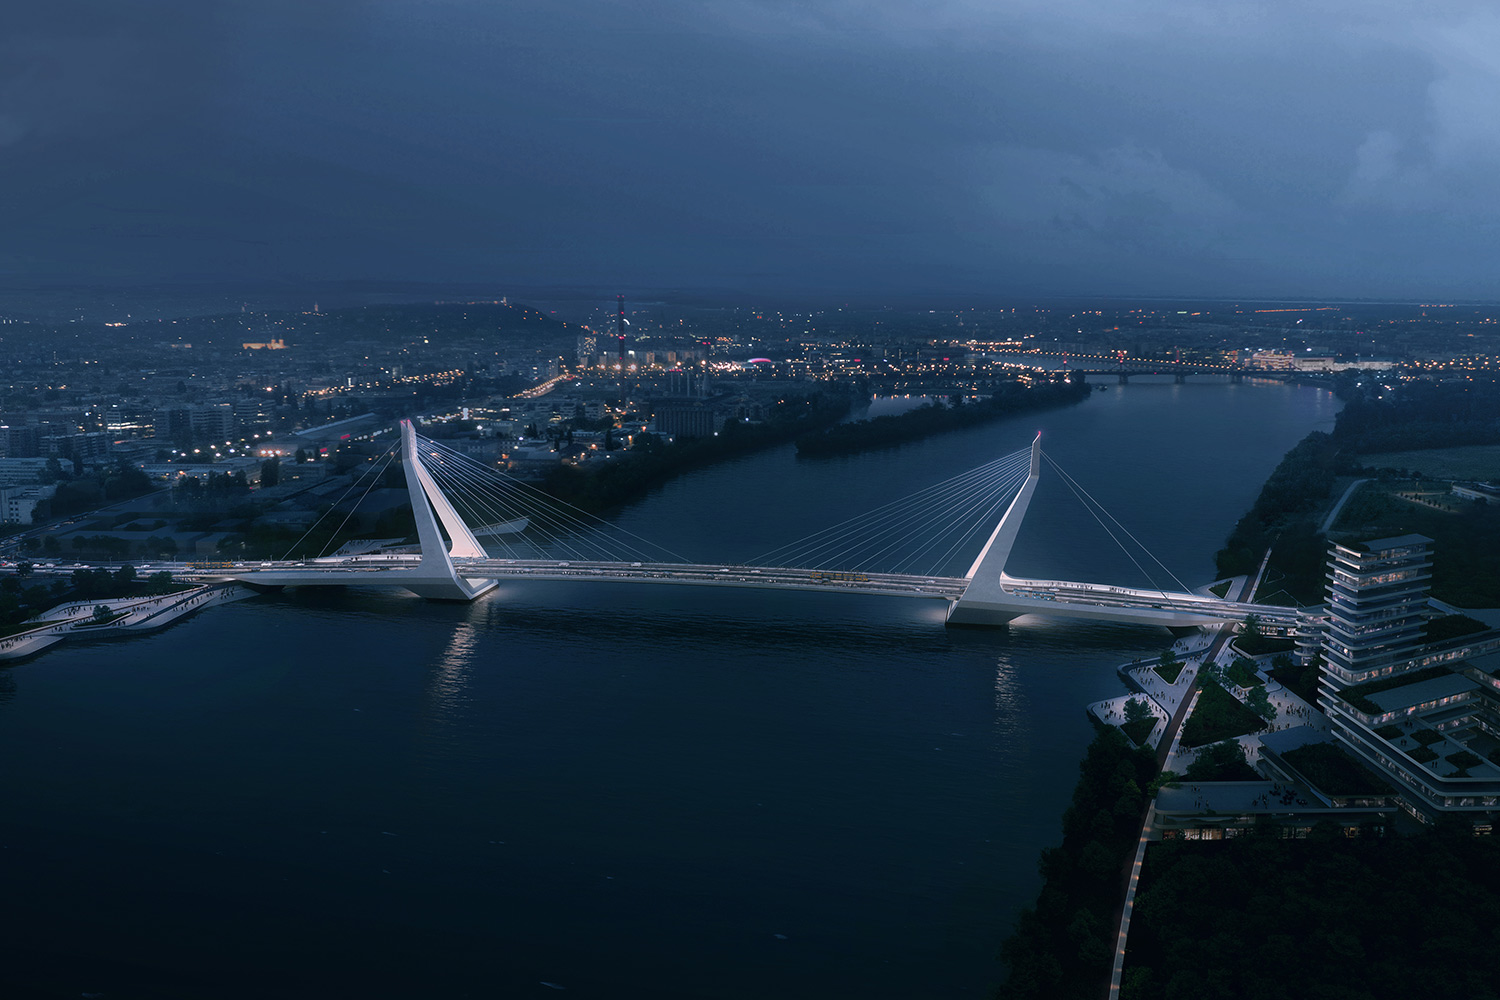 Nightscape of the New Danube Bridge, lit up against the dark water